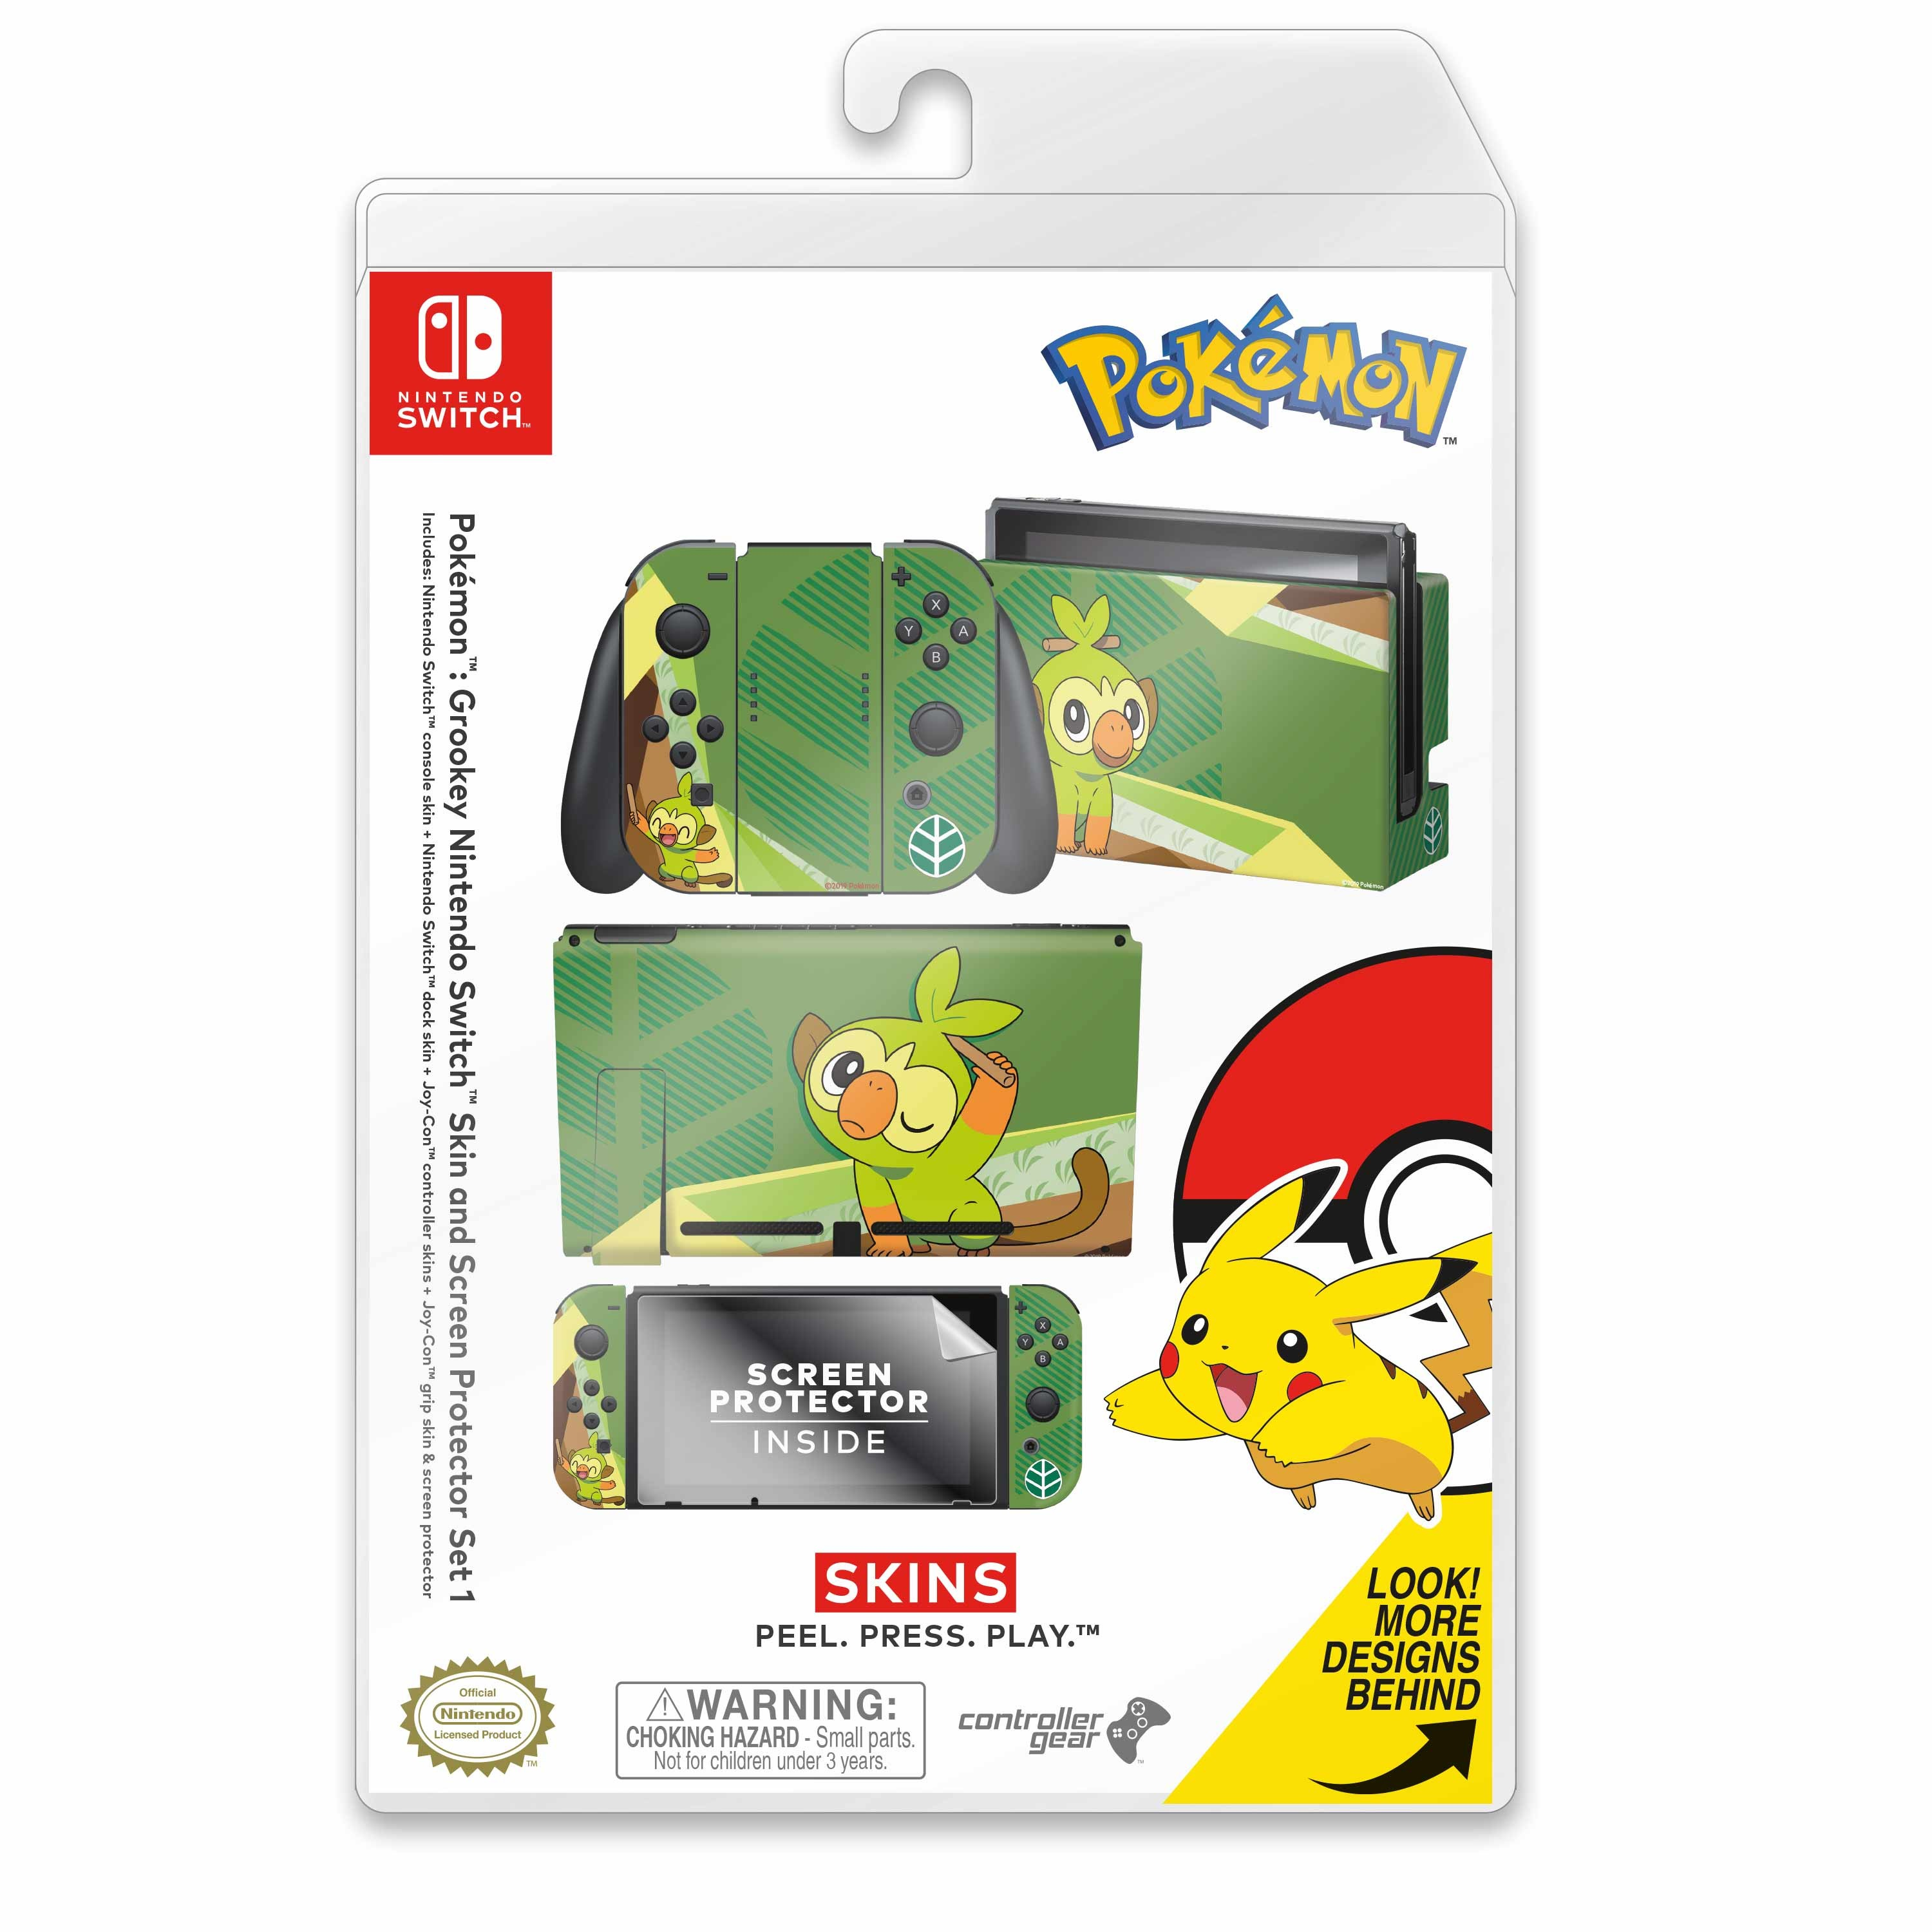 Nintendo Switch Skin & Screen Protector Set with a Pokemon Grookey Design, Image 1